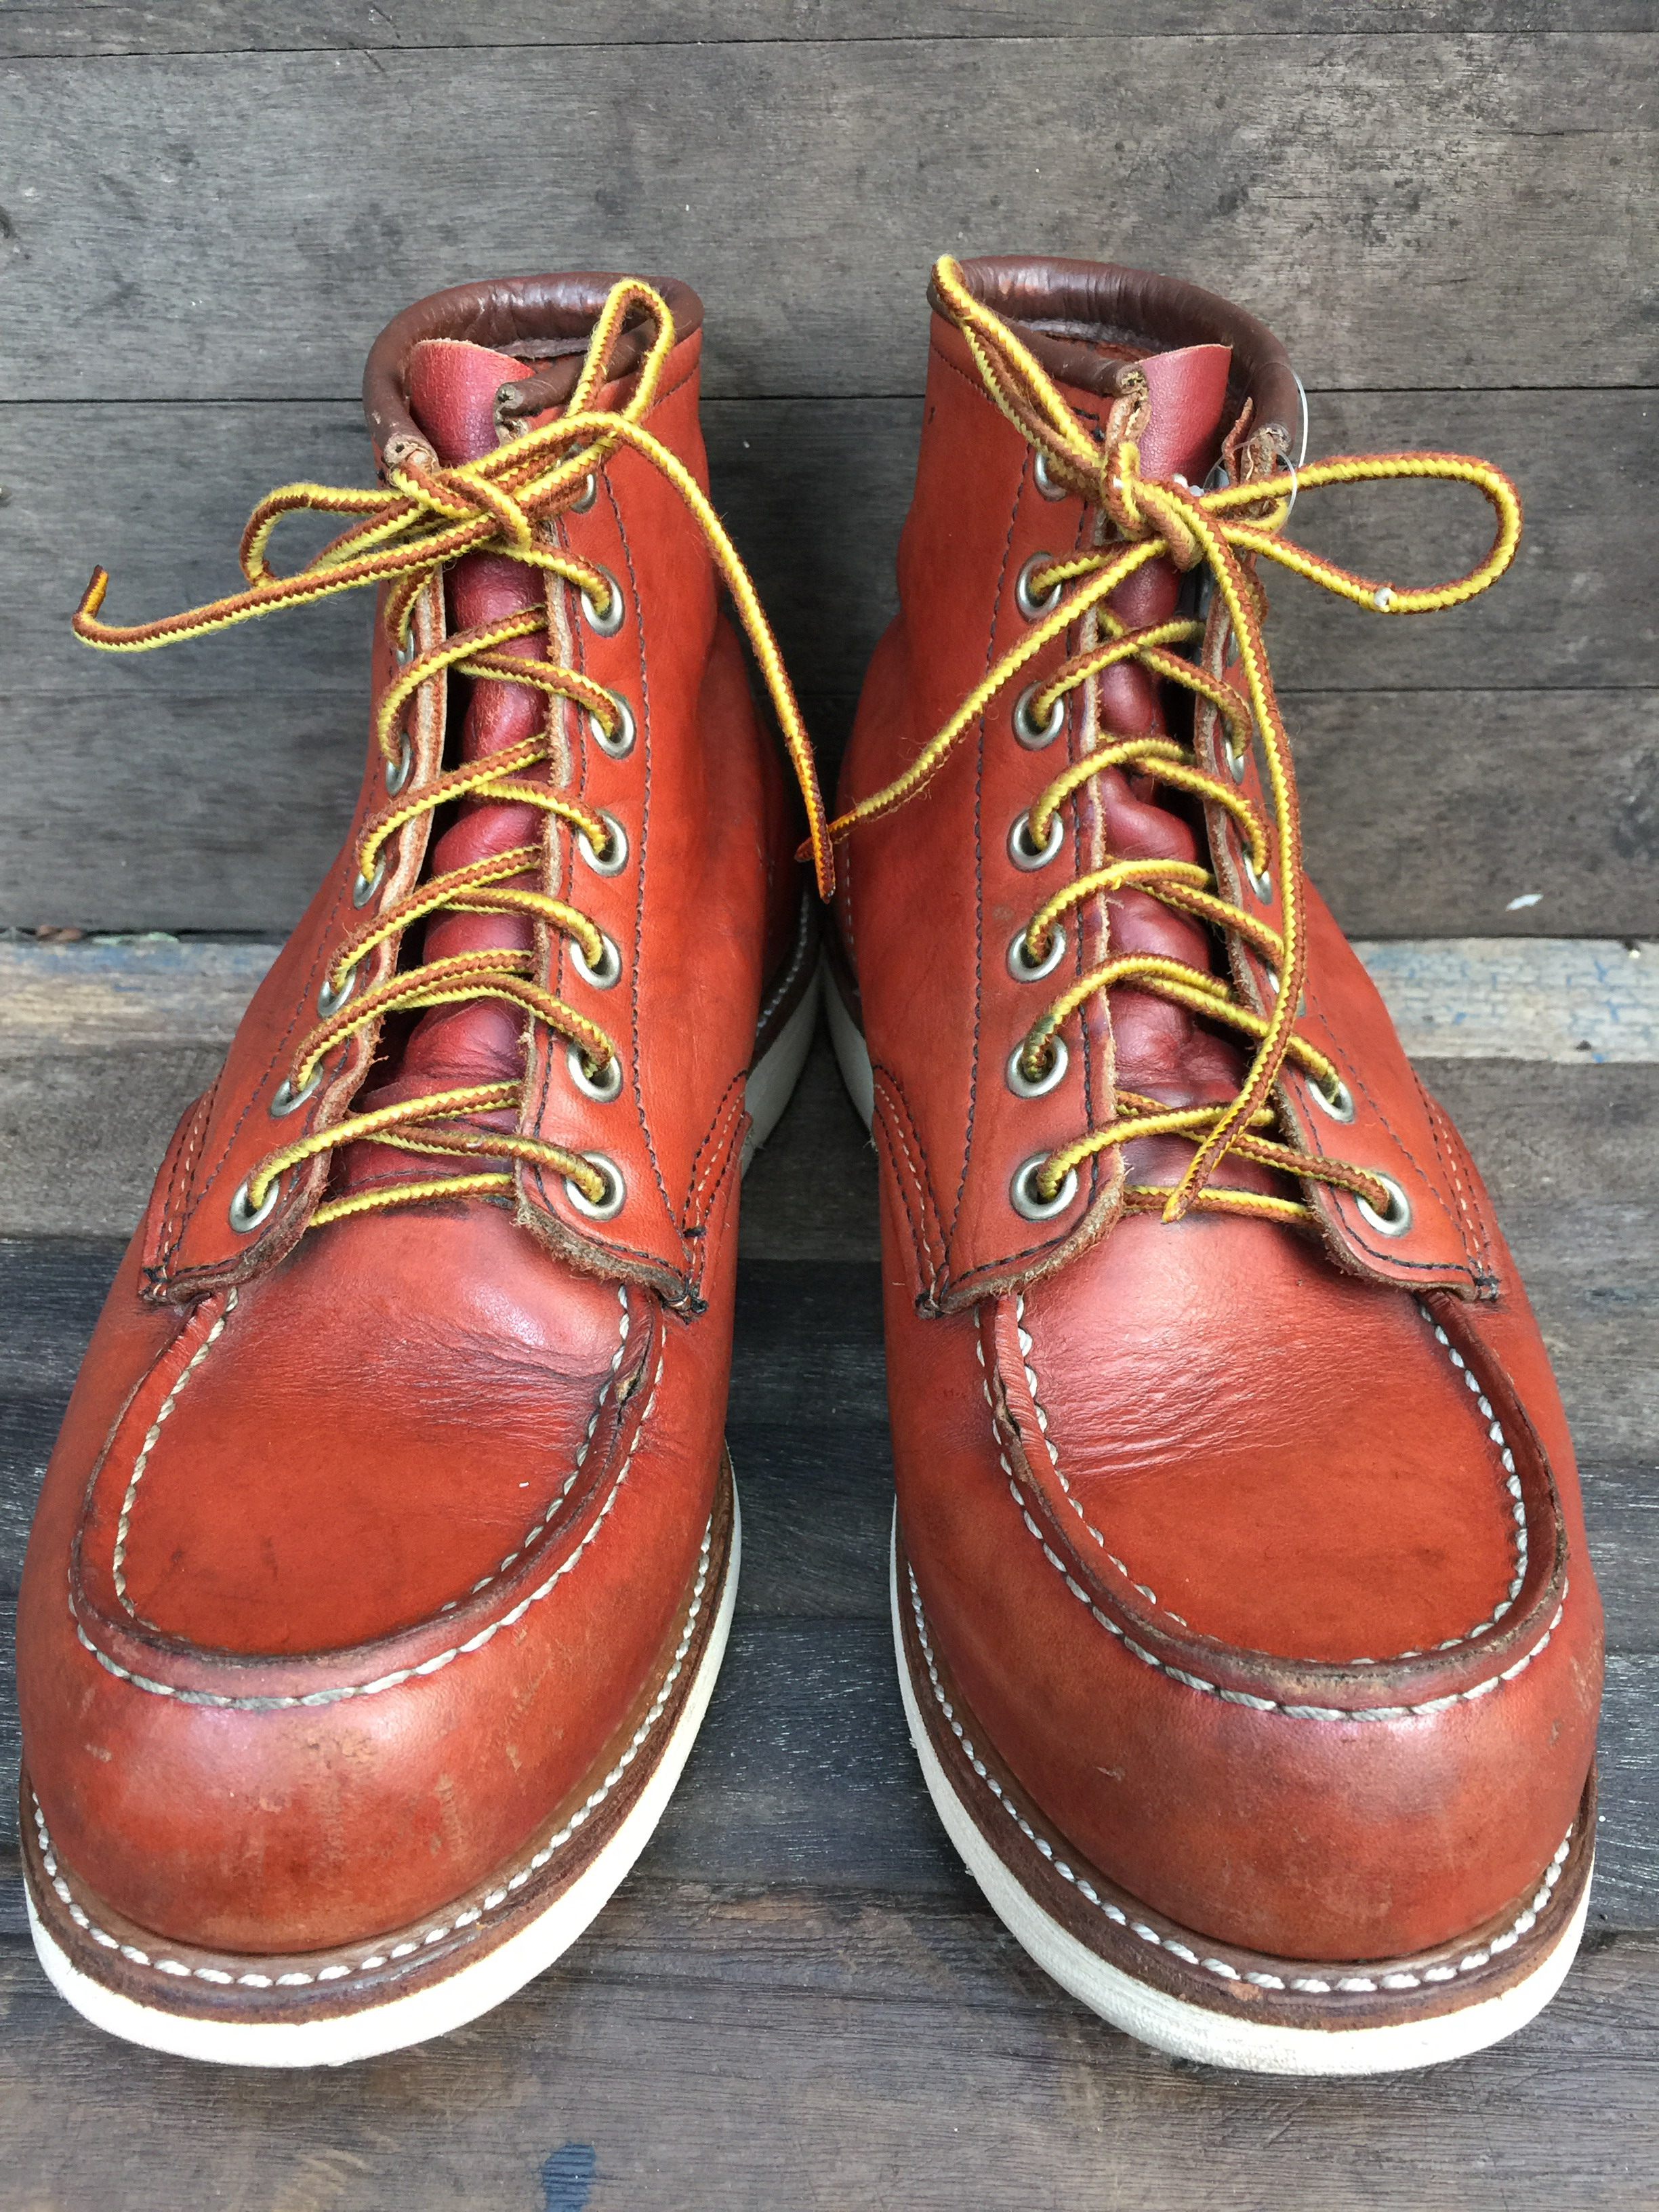 Red wing 8131 size 6.5